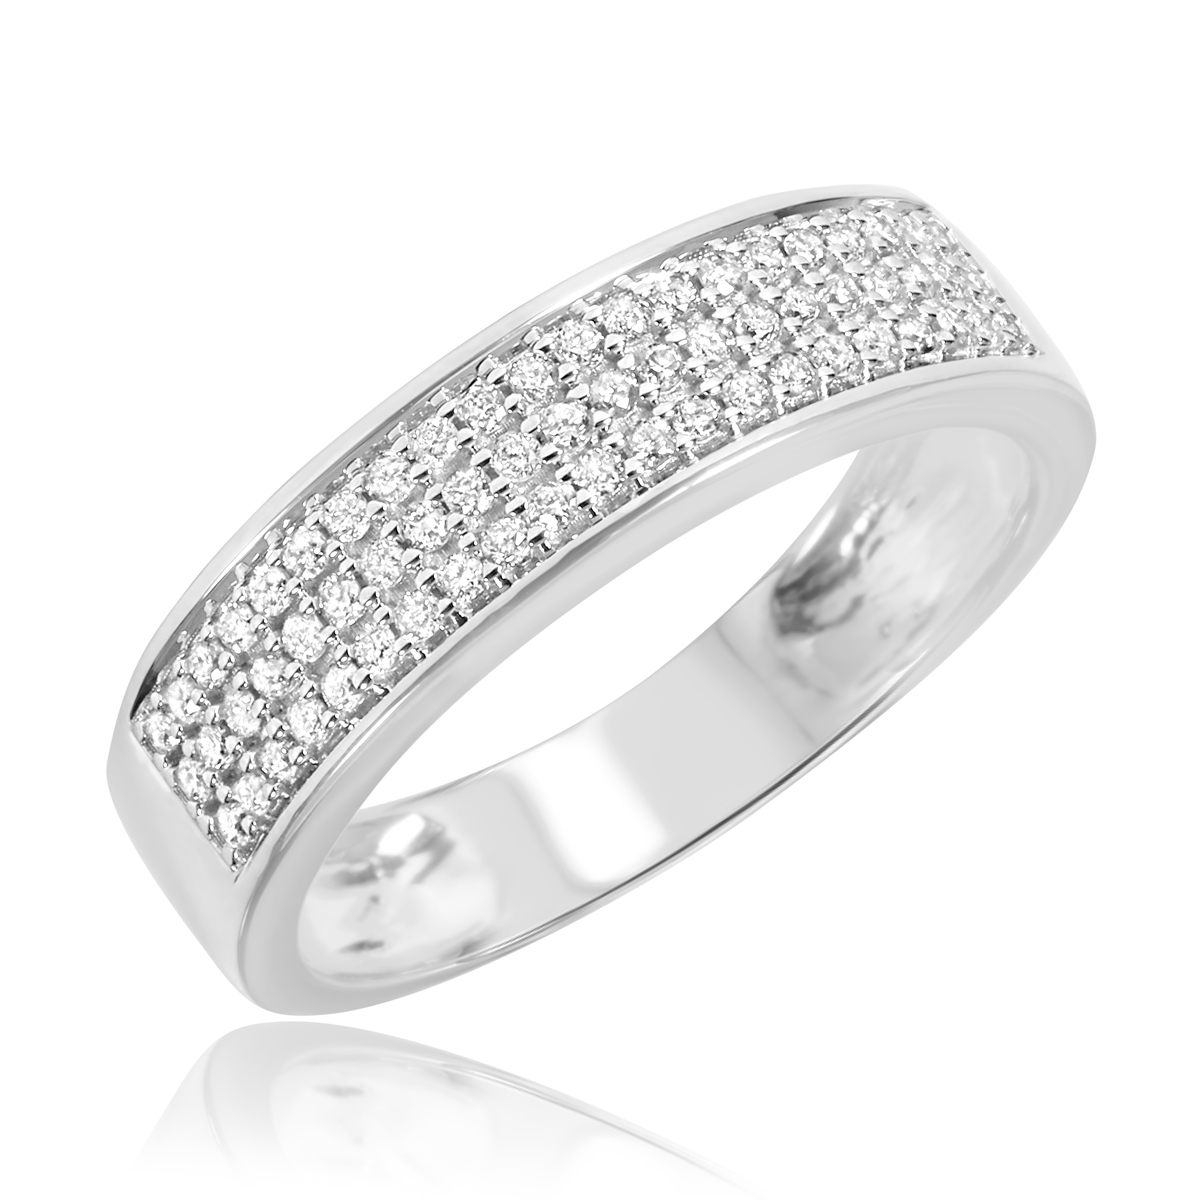 1 4 CT TW Diamond Mens Wedding Band 14K White Gold